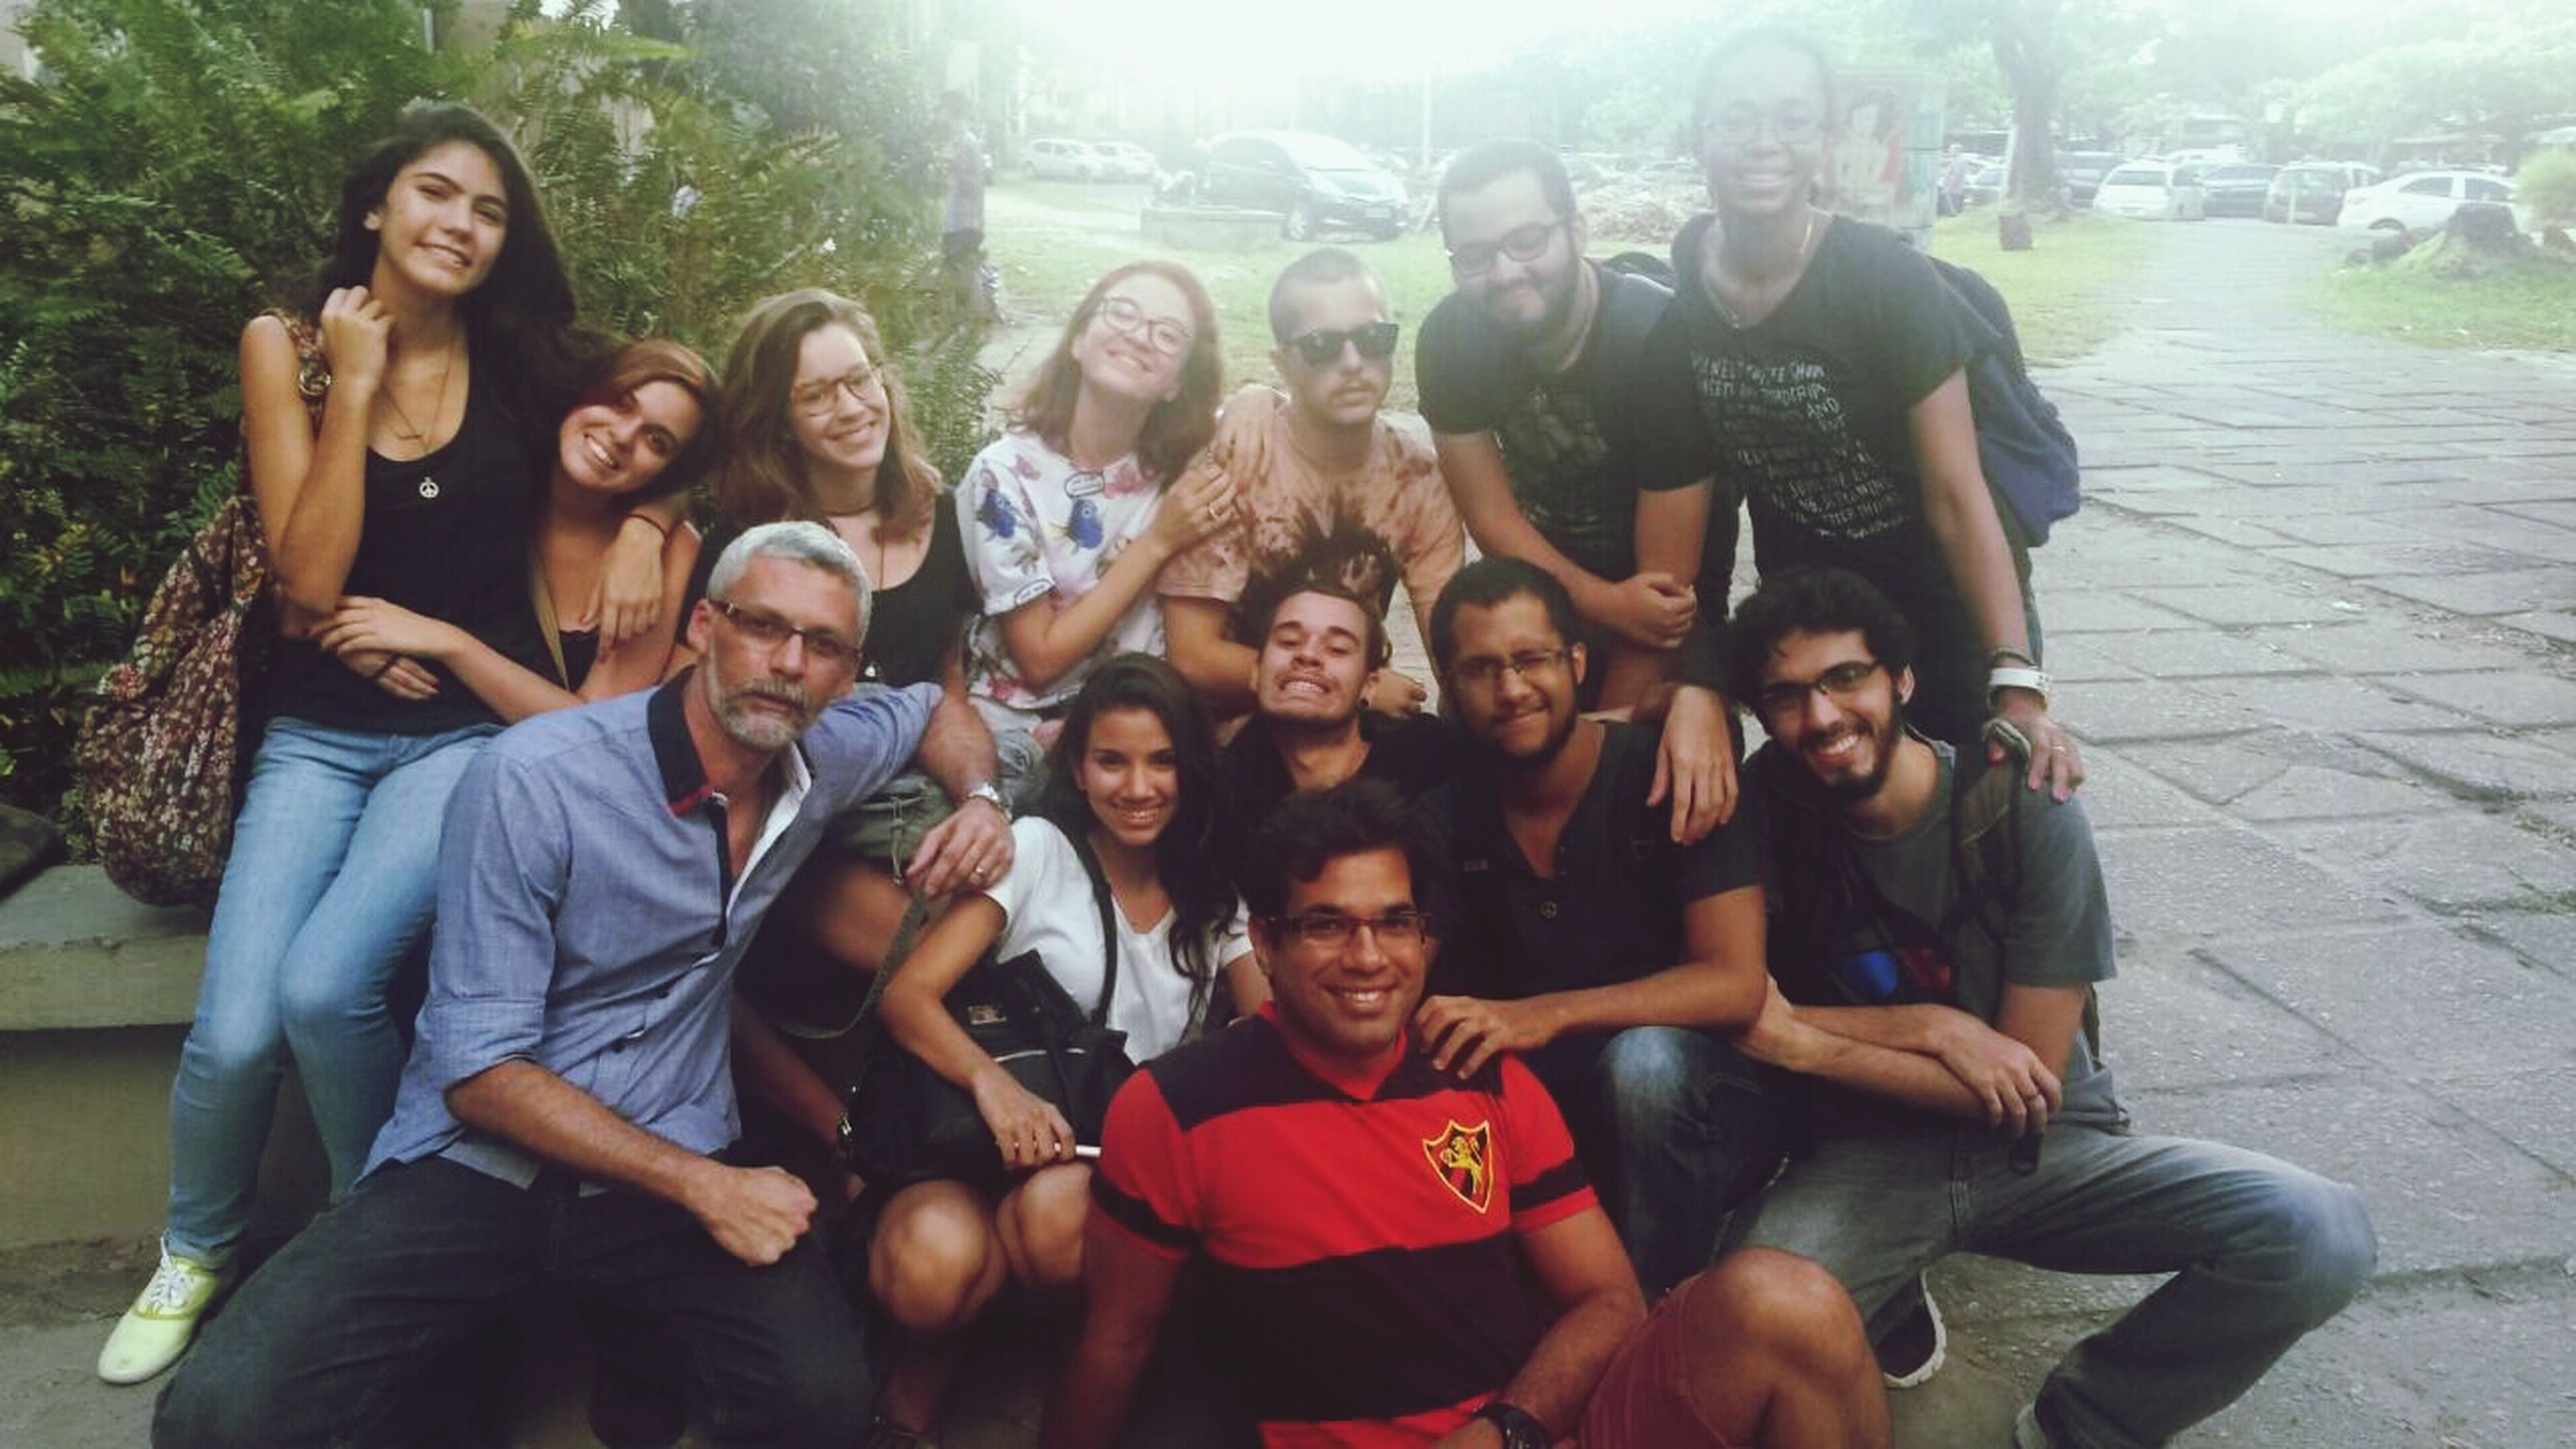 lifestyles, togetherness, leisure activity, bonding, casual clothing, person, happiness, friendship, love, young men, young adult, portrait, large group of people, smiling, enjoyment, looking at camera, men